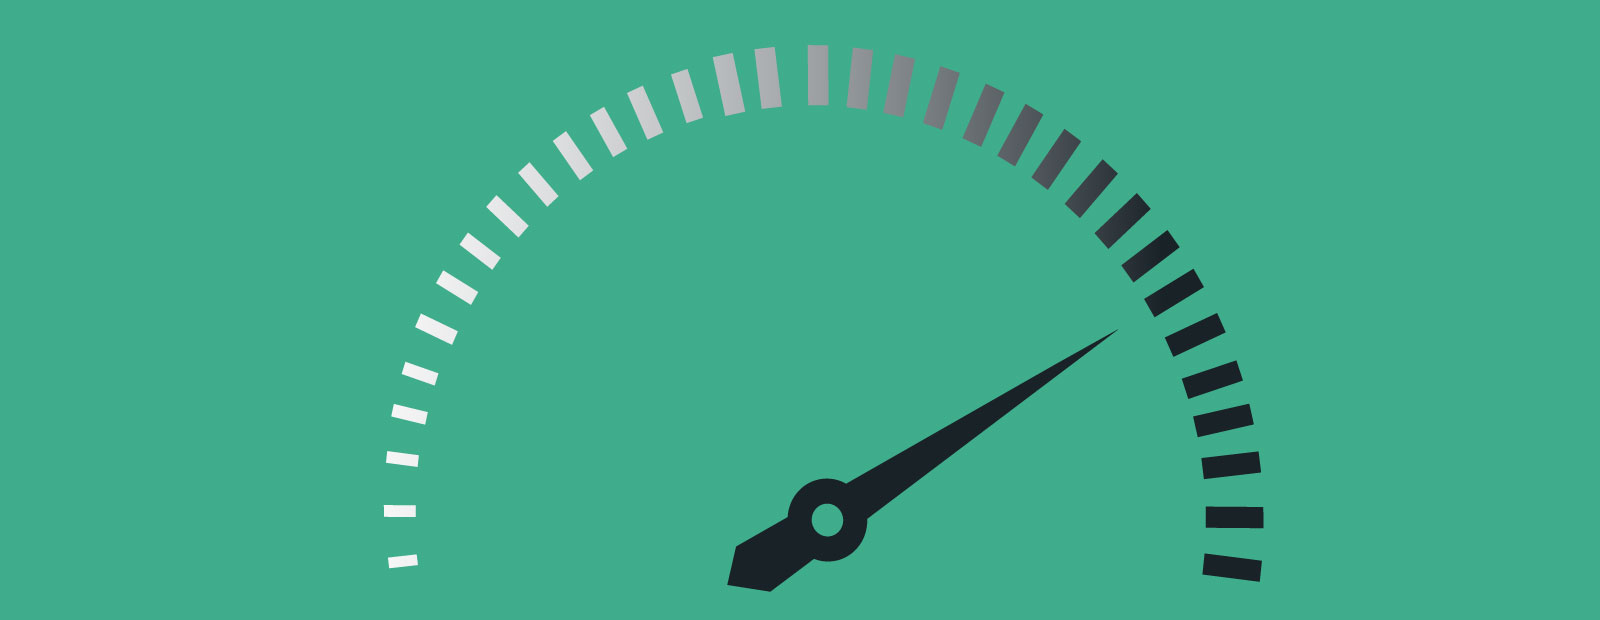 15 TIPS TO LOAD YOUR WEBSITE FASTER